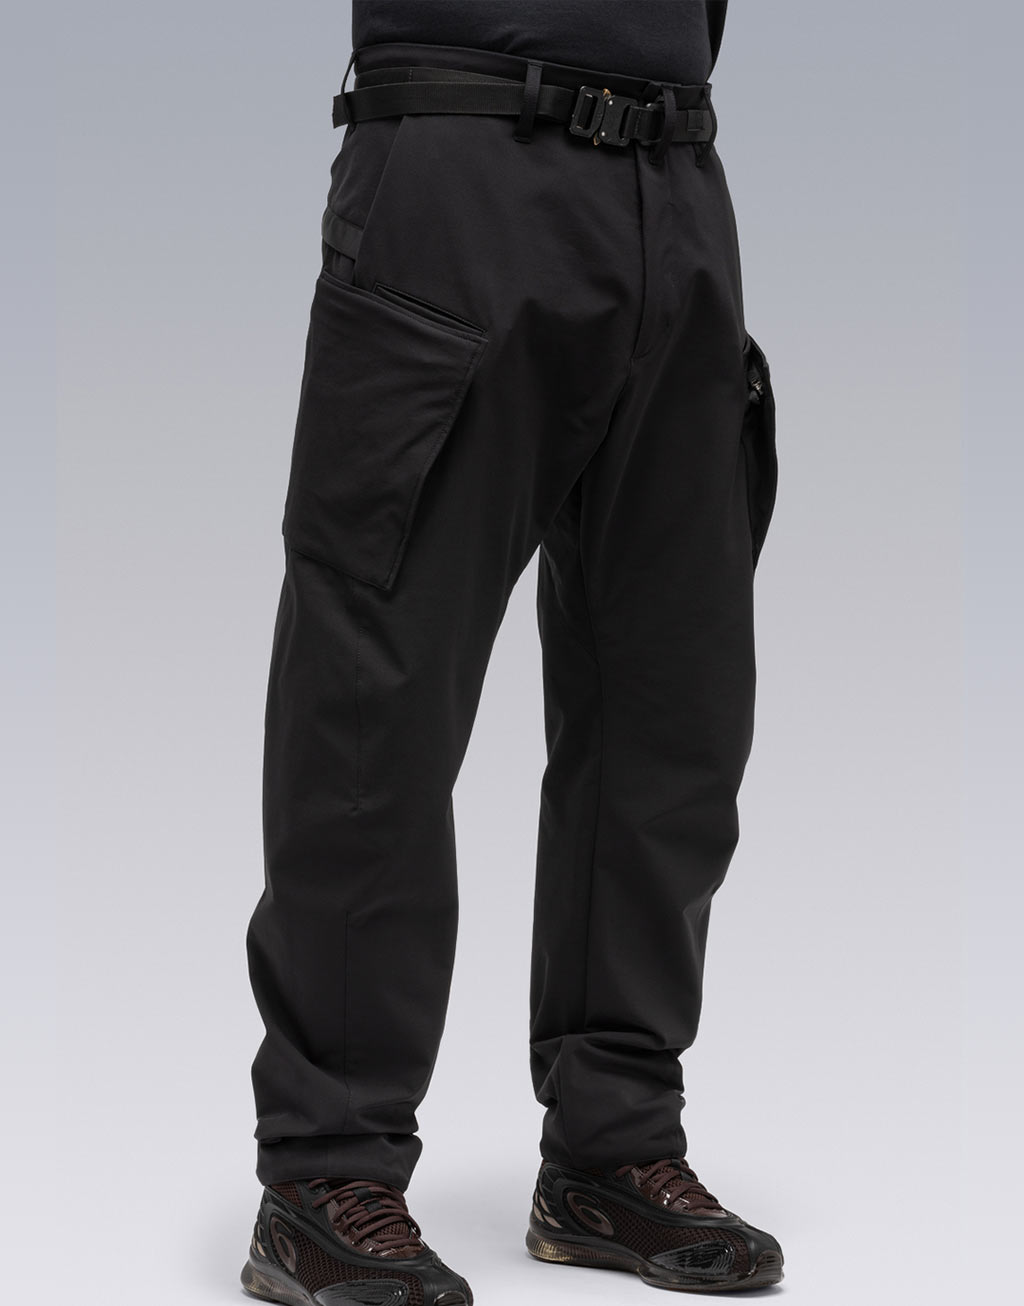 best techwear pants 4